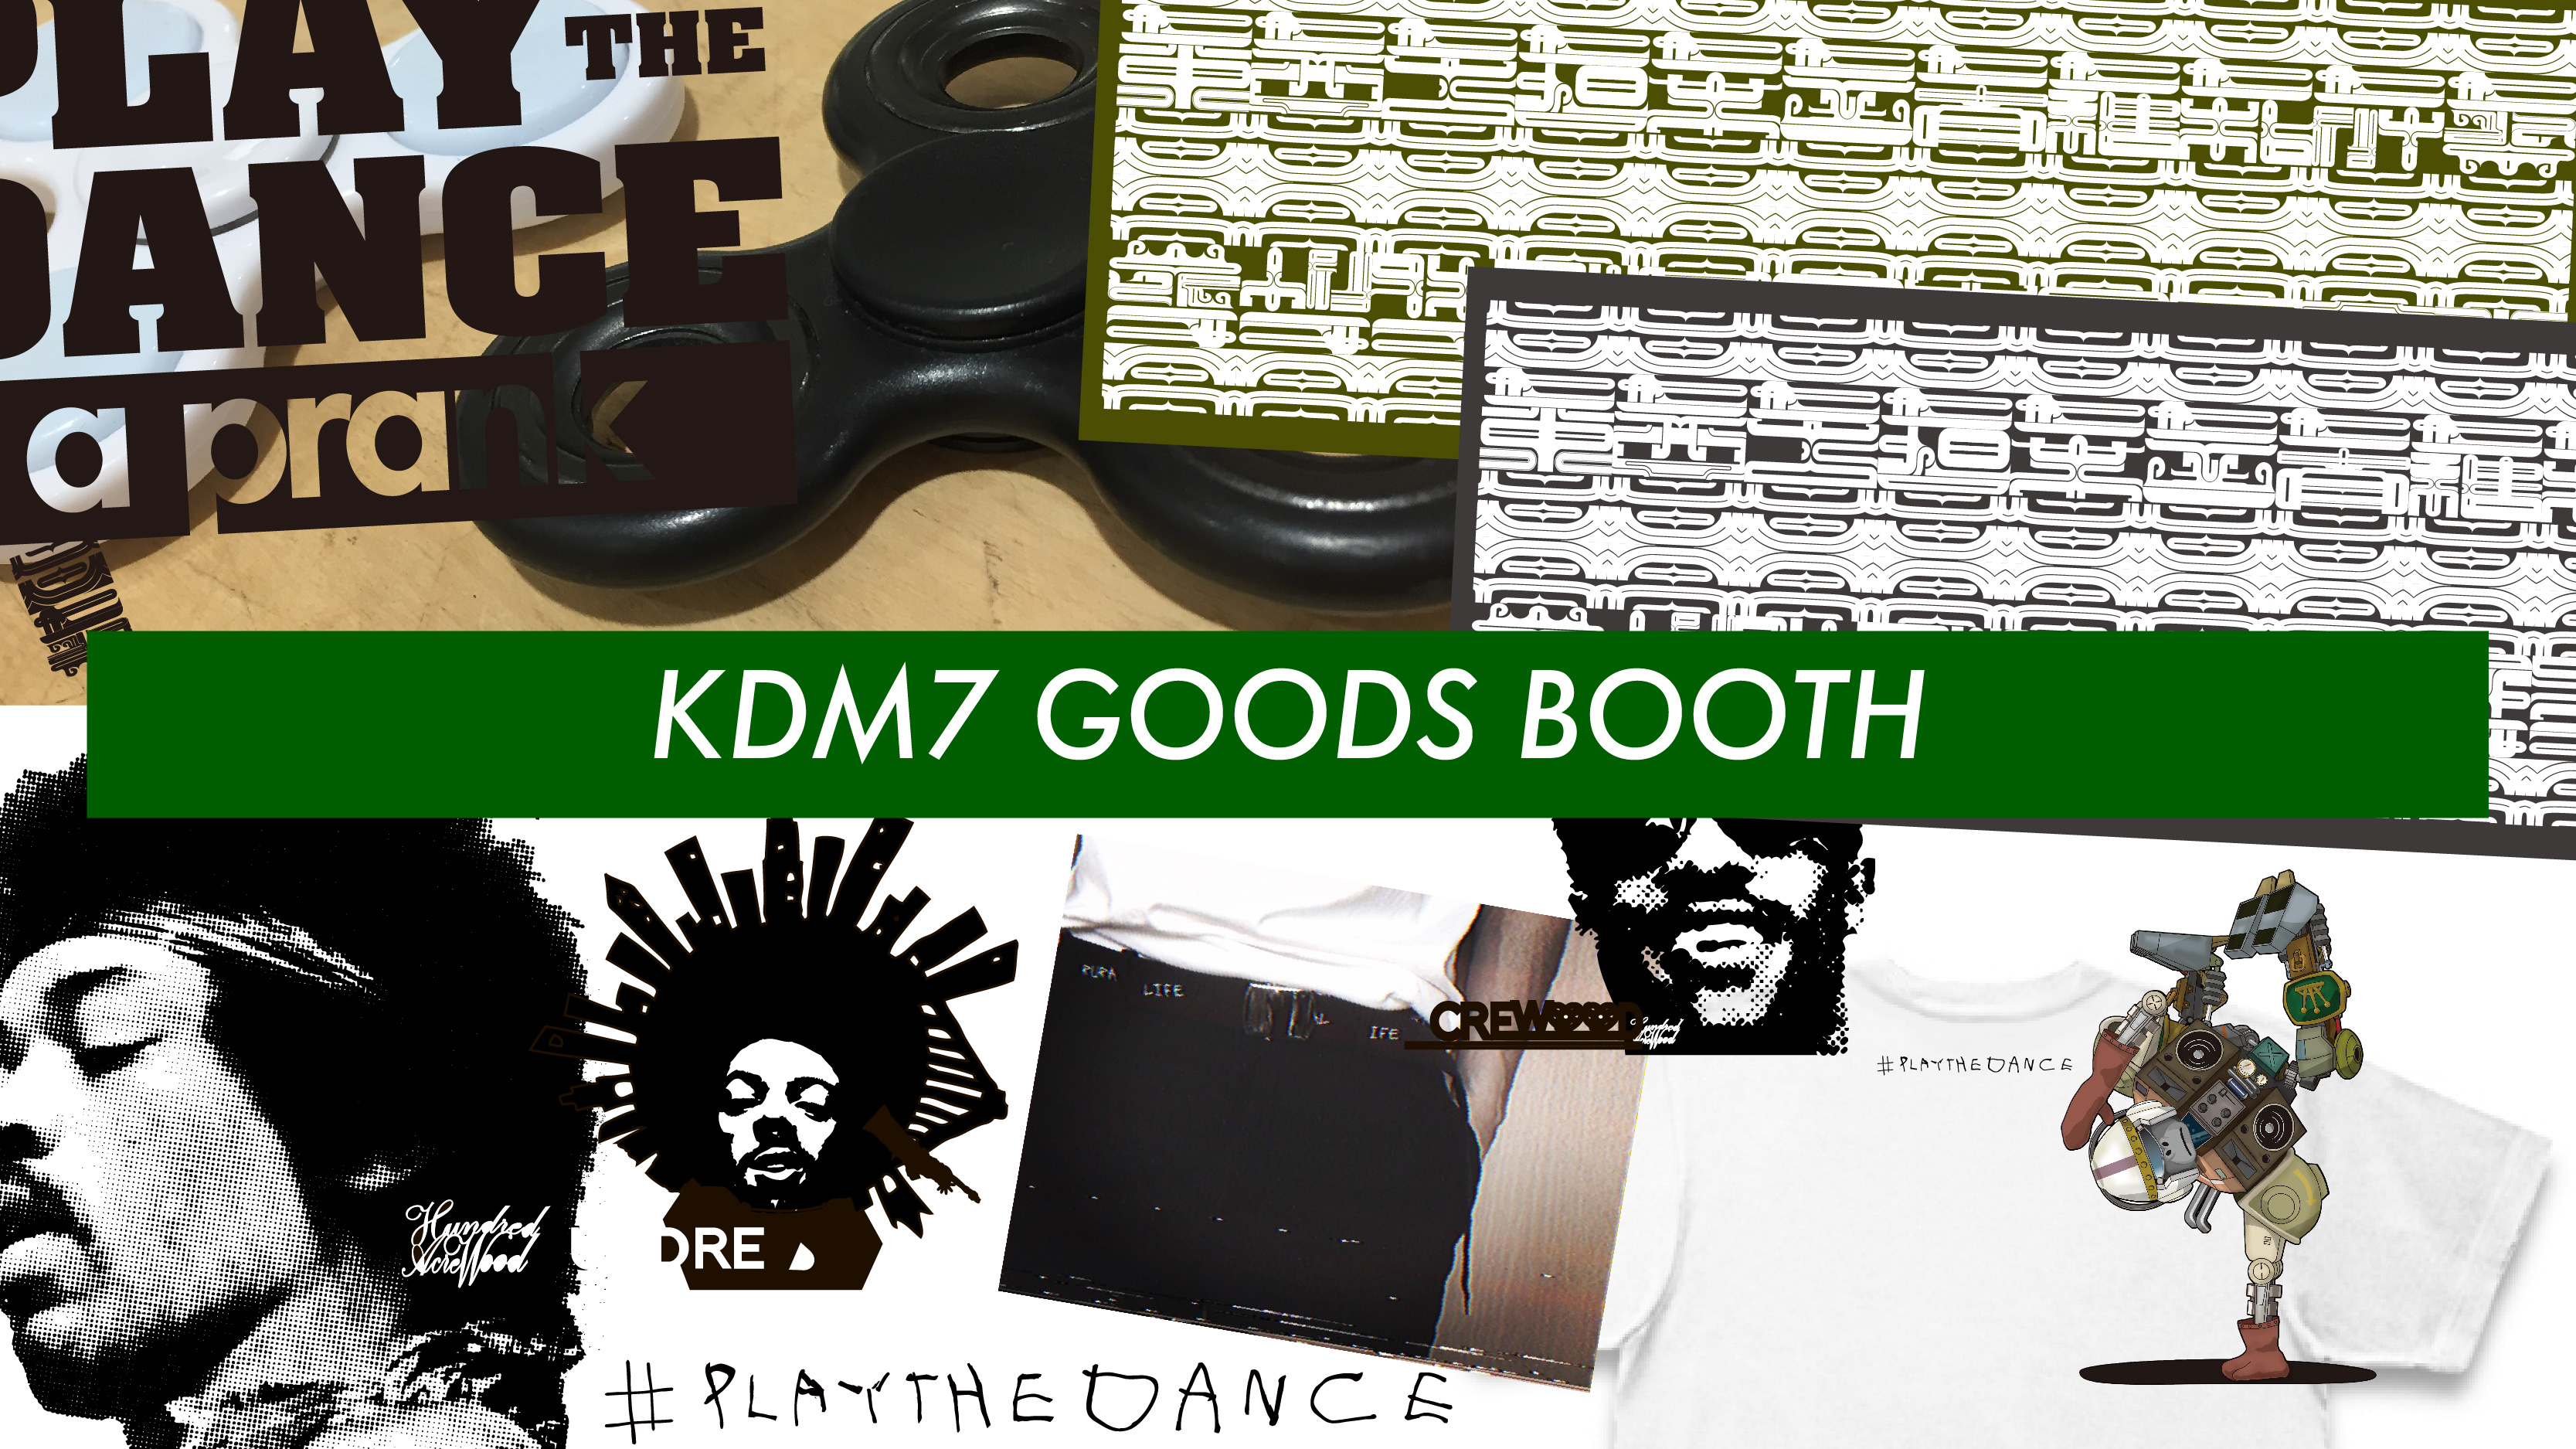 KDM7 GOODS BOOTH